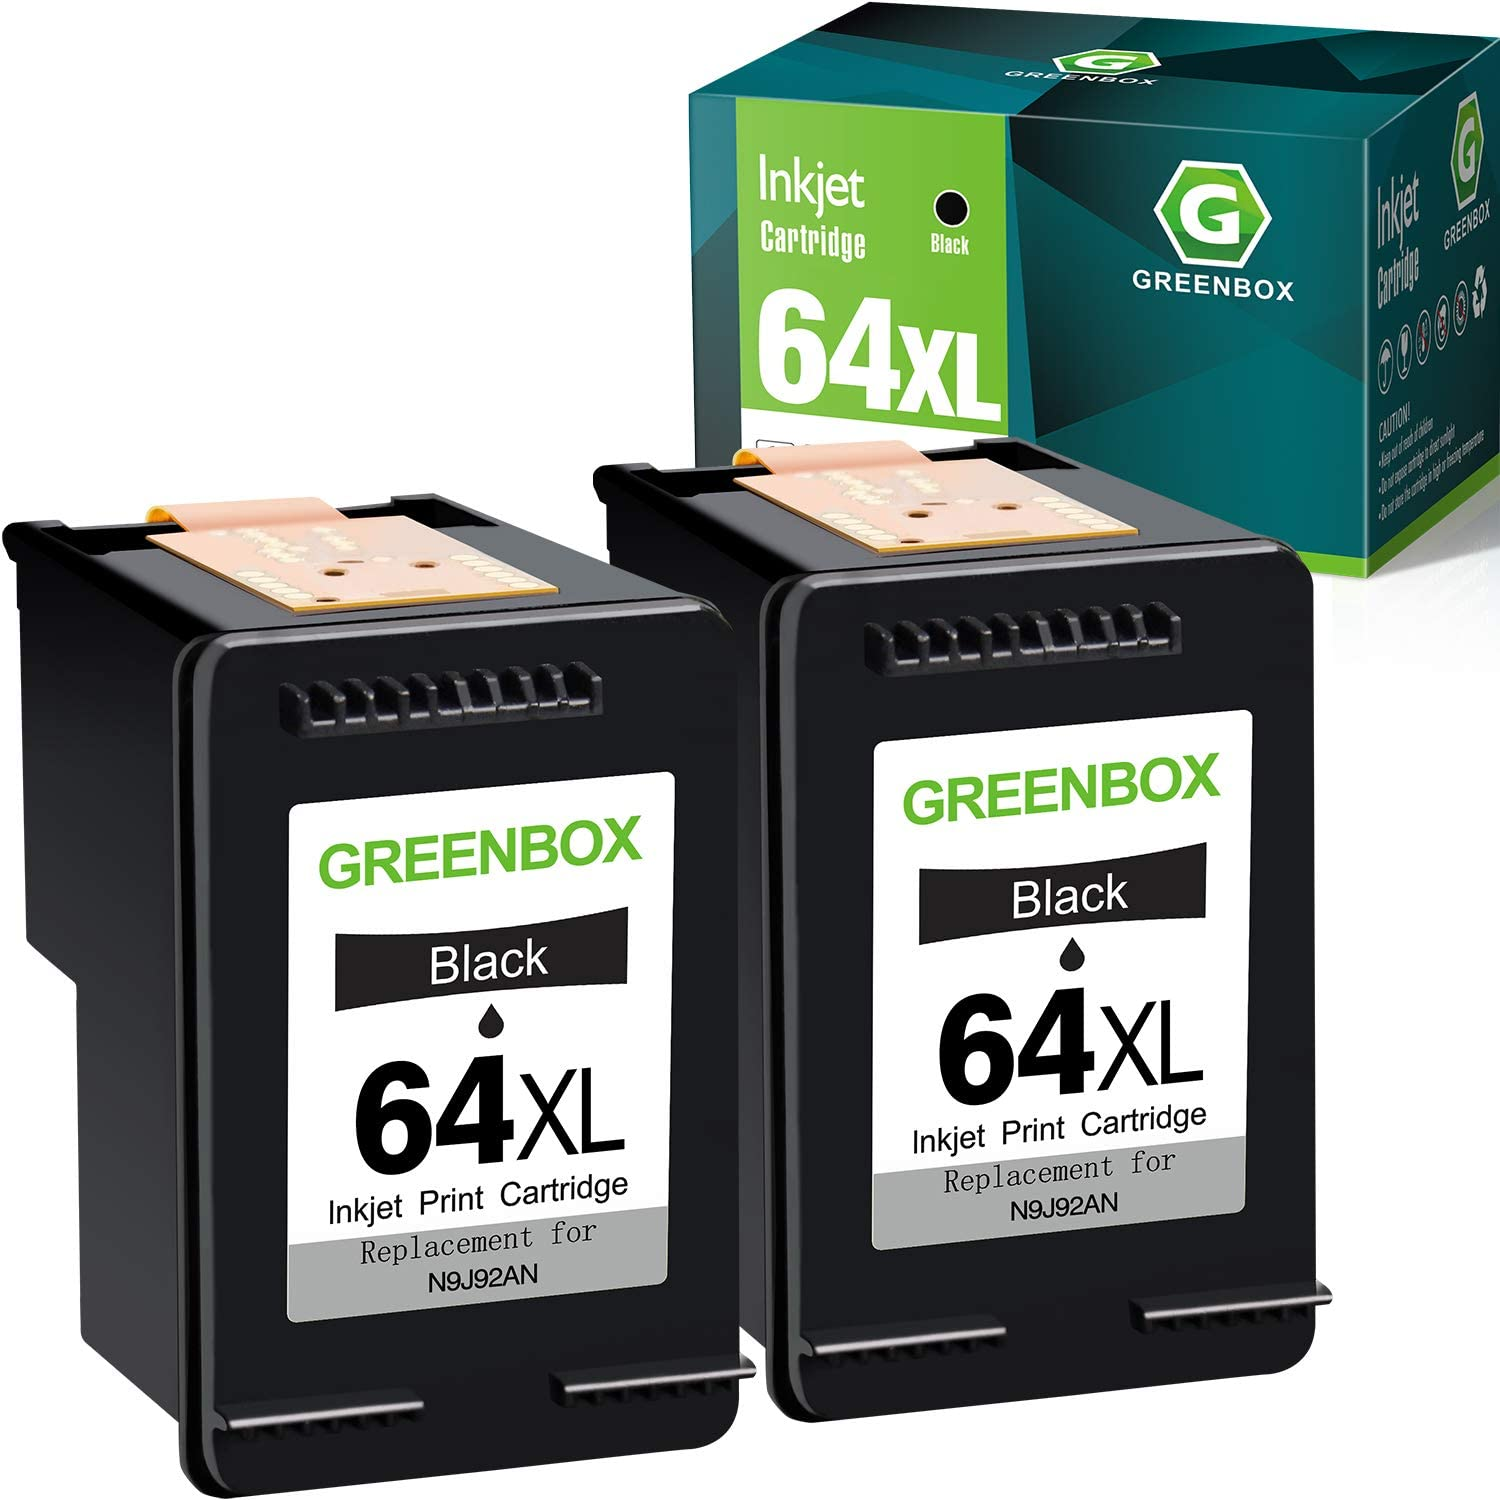 GREENBOX Remanufactured Ink Cartridge Replacement for HP 64 XL 64XL for HP Envy Photo 7855 7155 6255 6230 6252 6258 7120 6220 7130 7132 7158 7164 7820 7830 7858 7864 7800 Printer (2 Black)